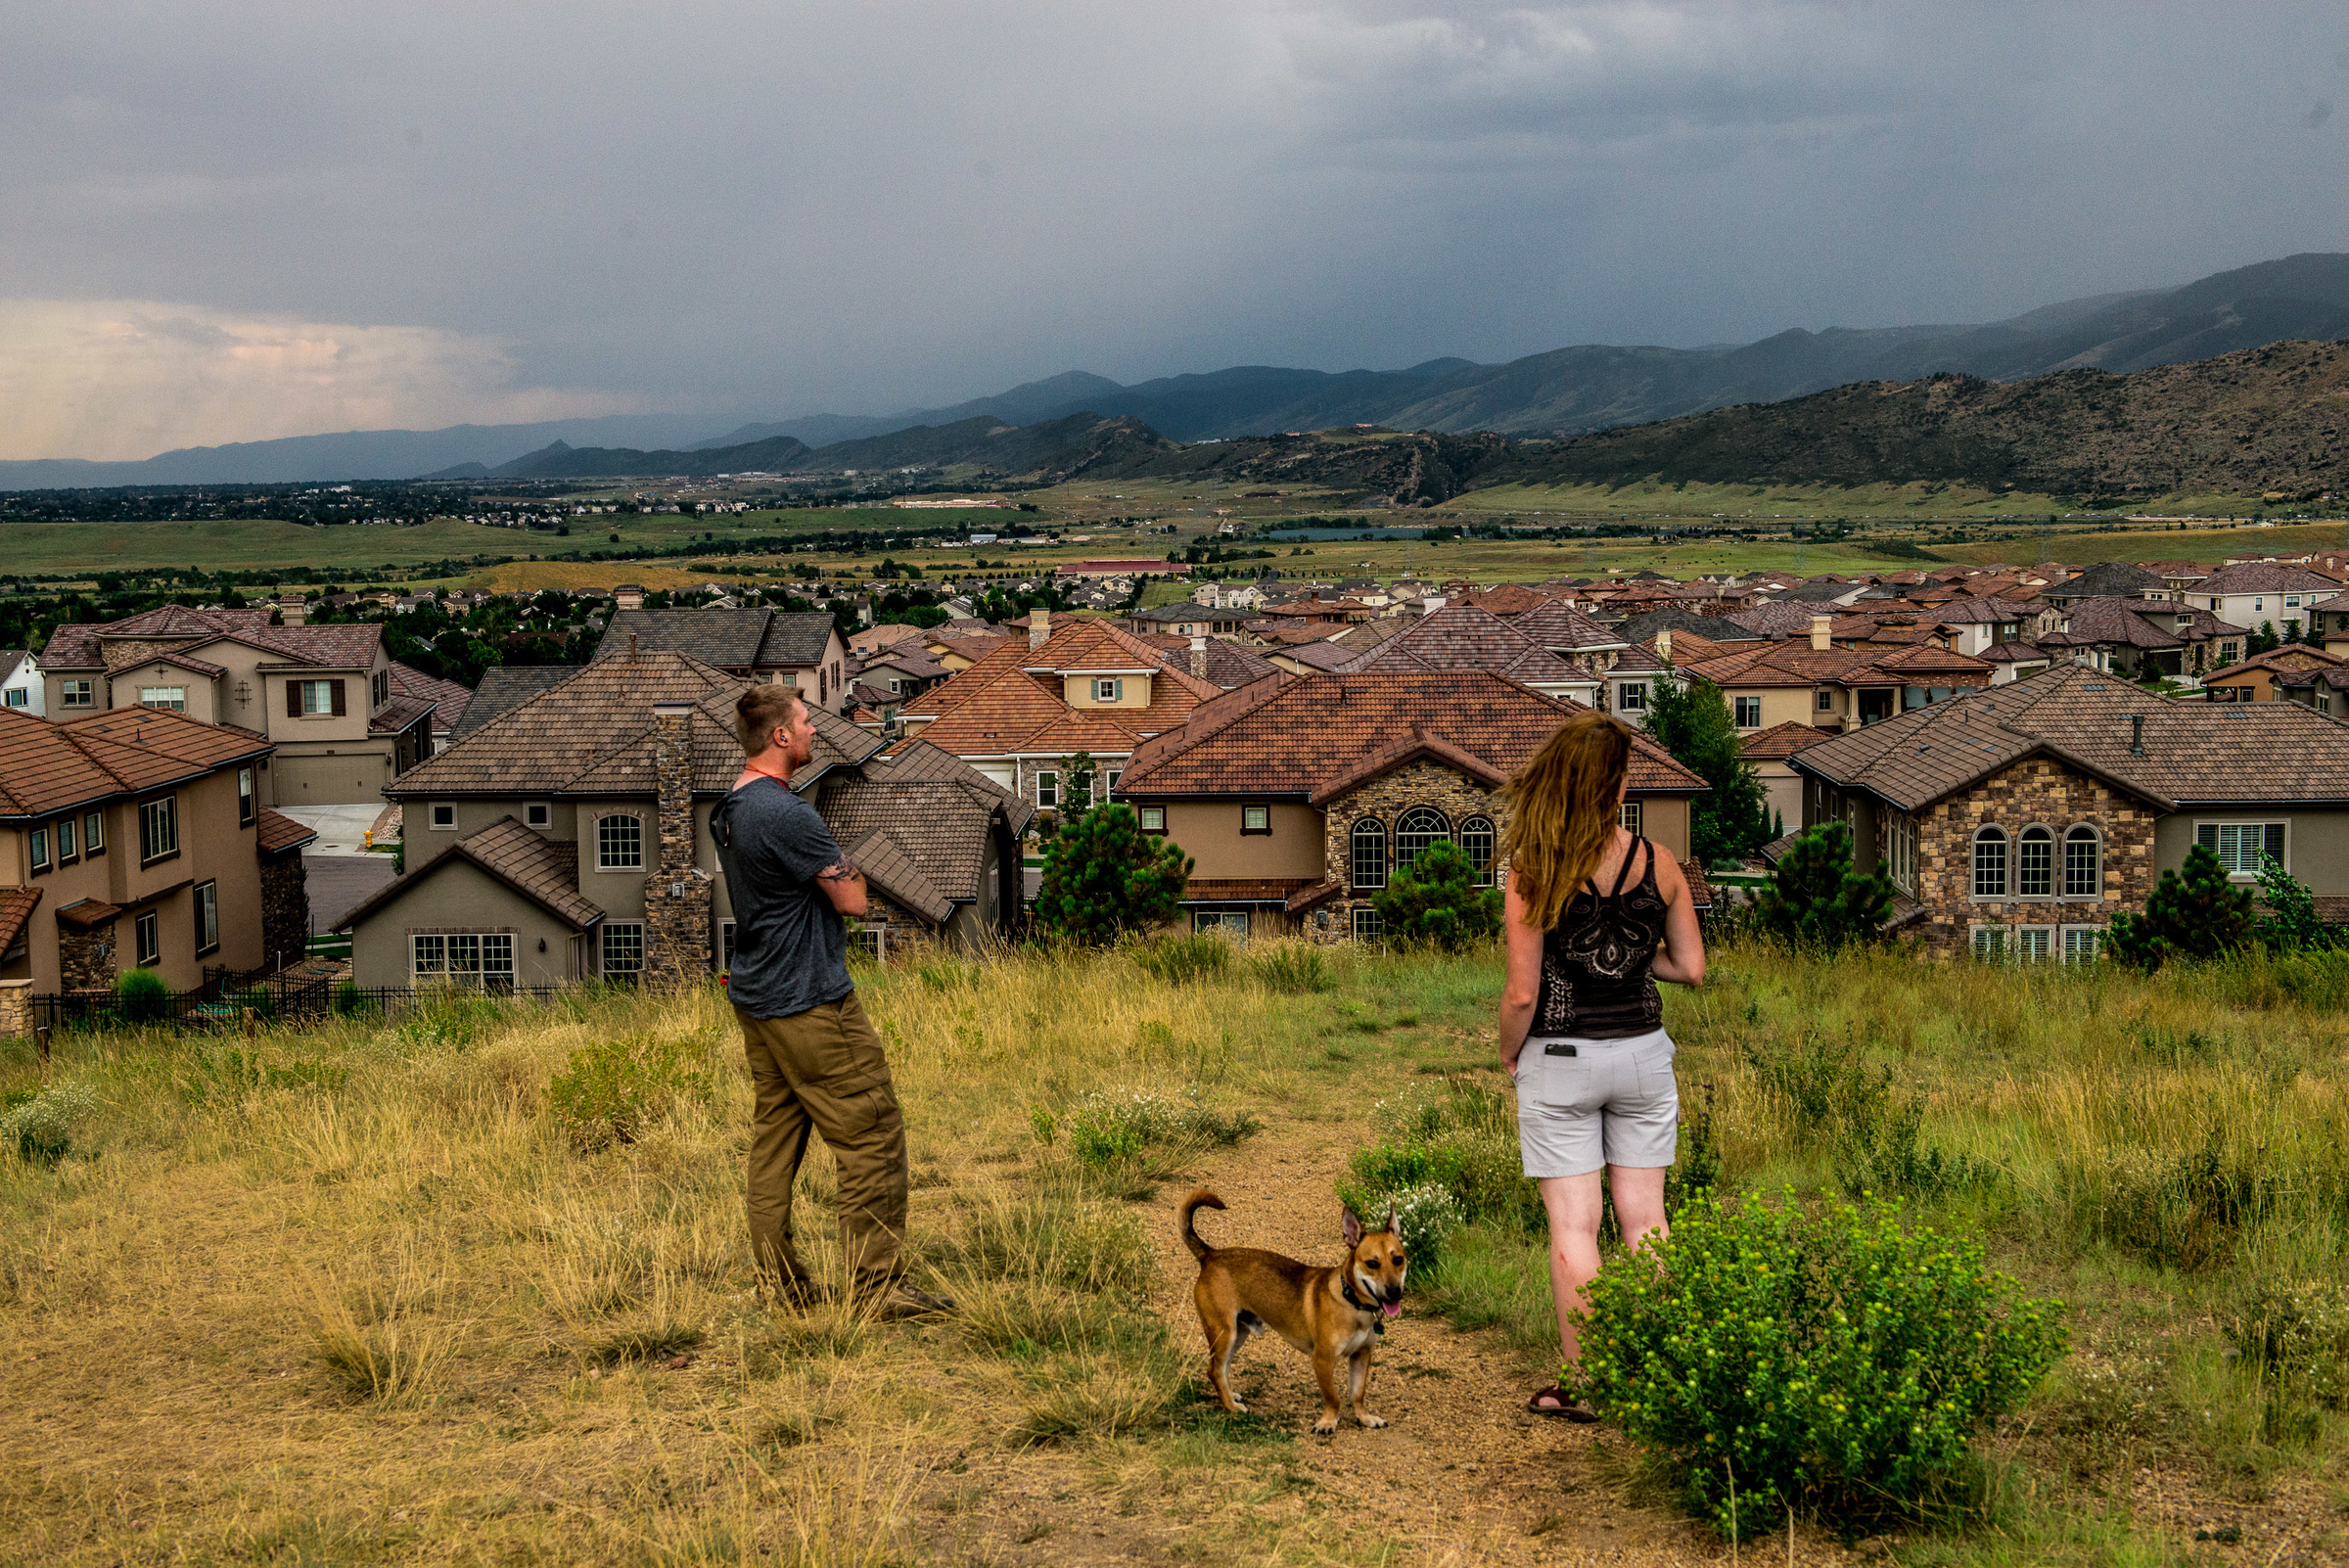 A couple and their dog at the Solterra dog park overlooking the homes.